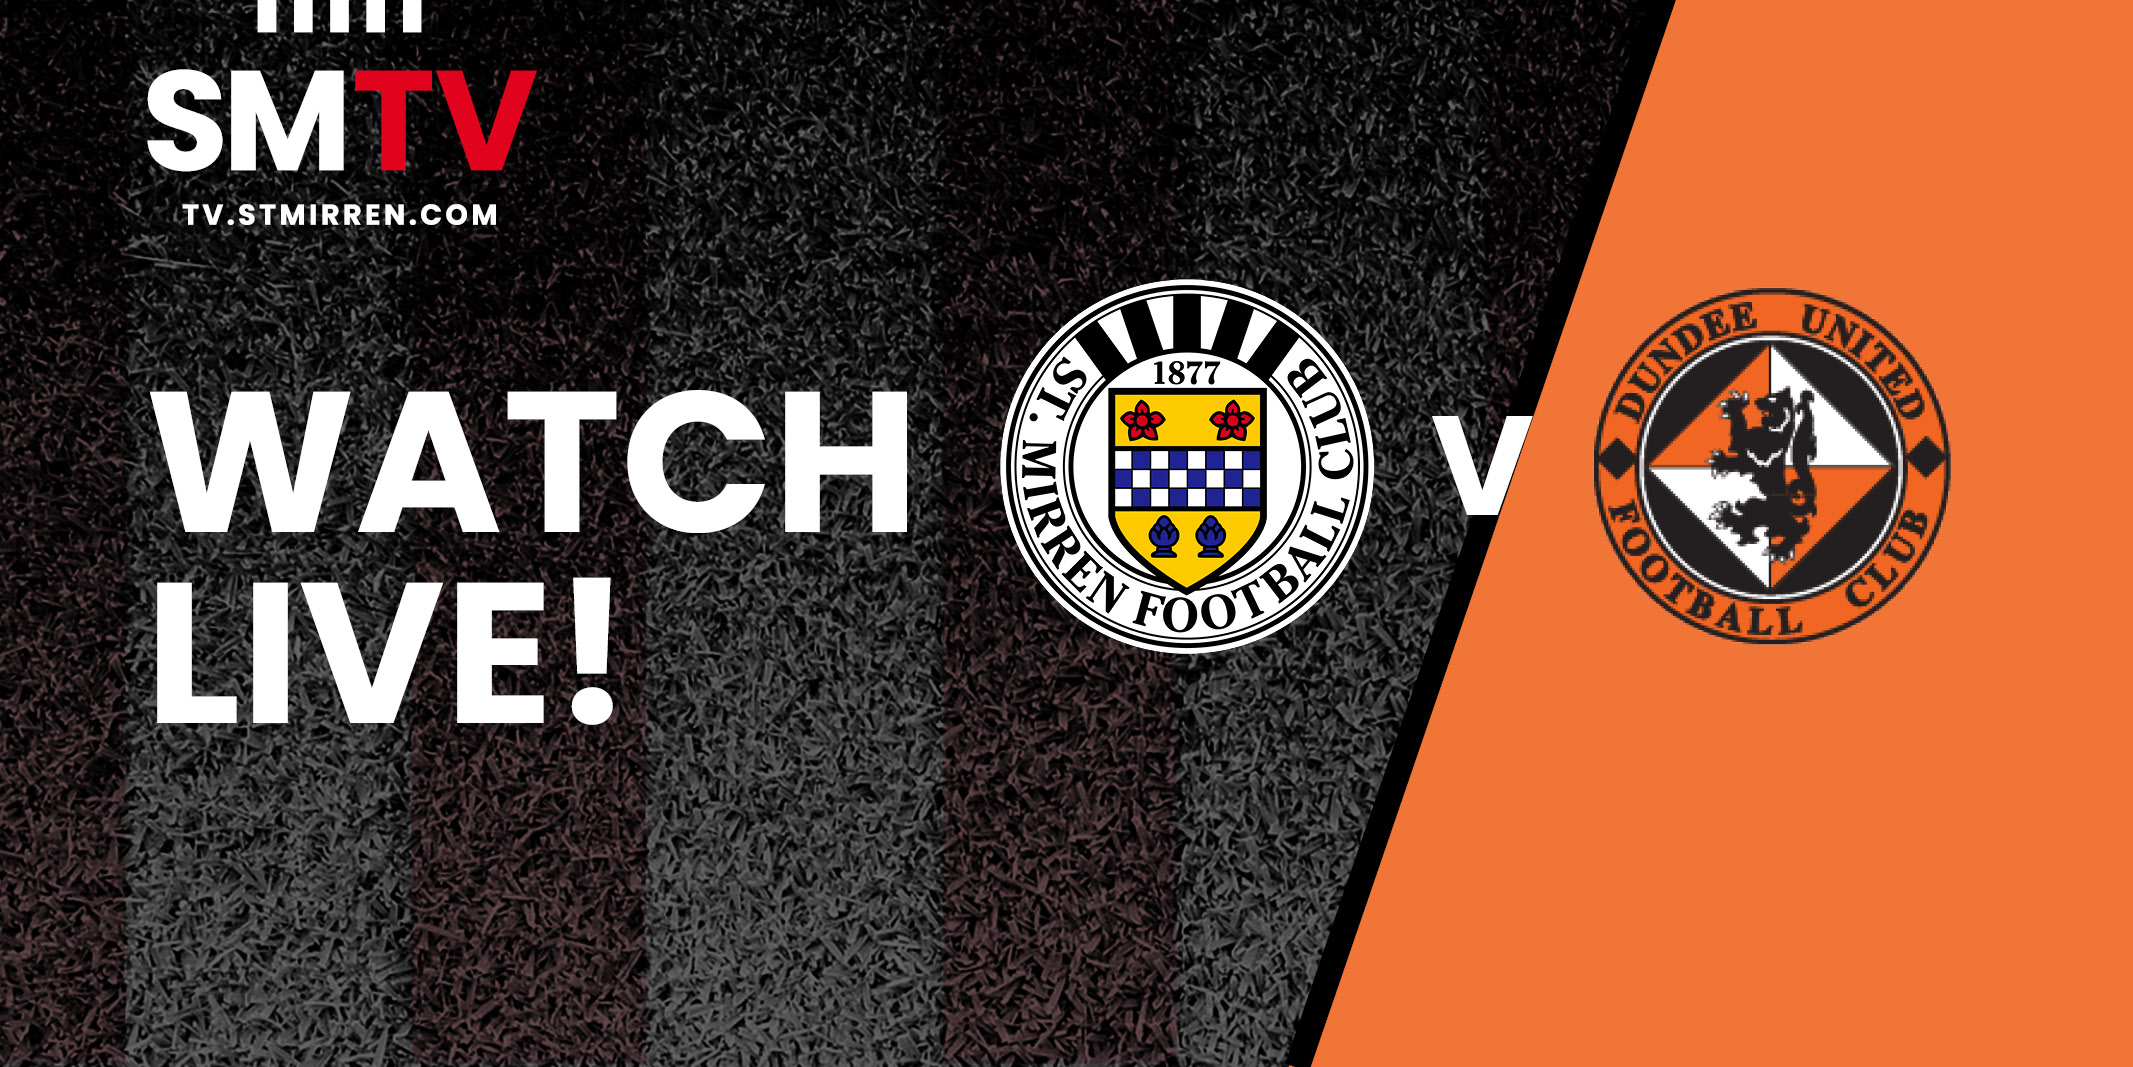 Up Next: St Mirren v Dundee United (Fri 6th Nov)